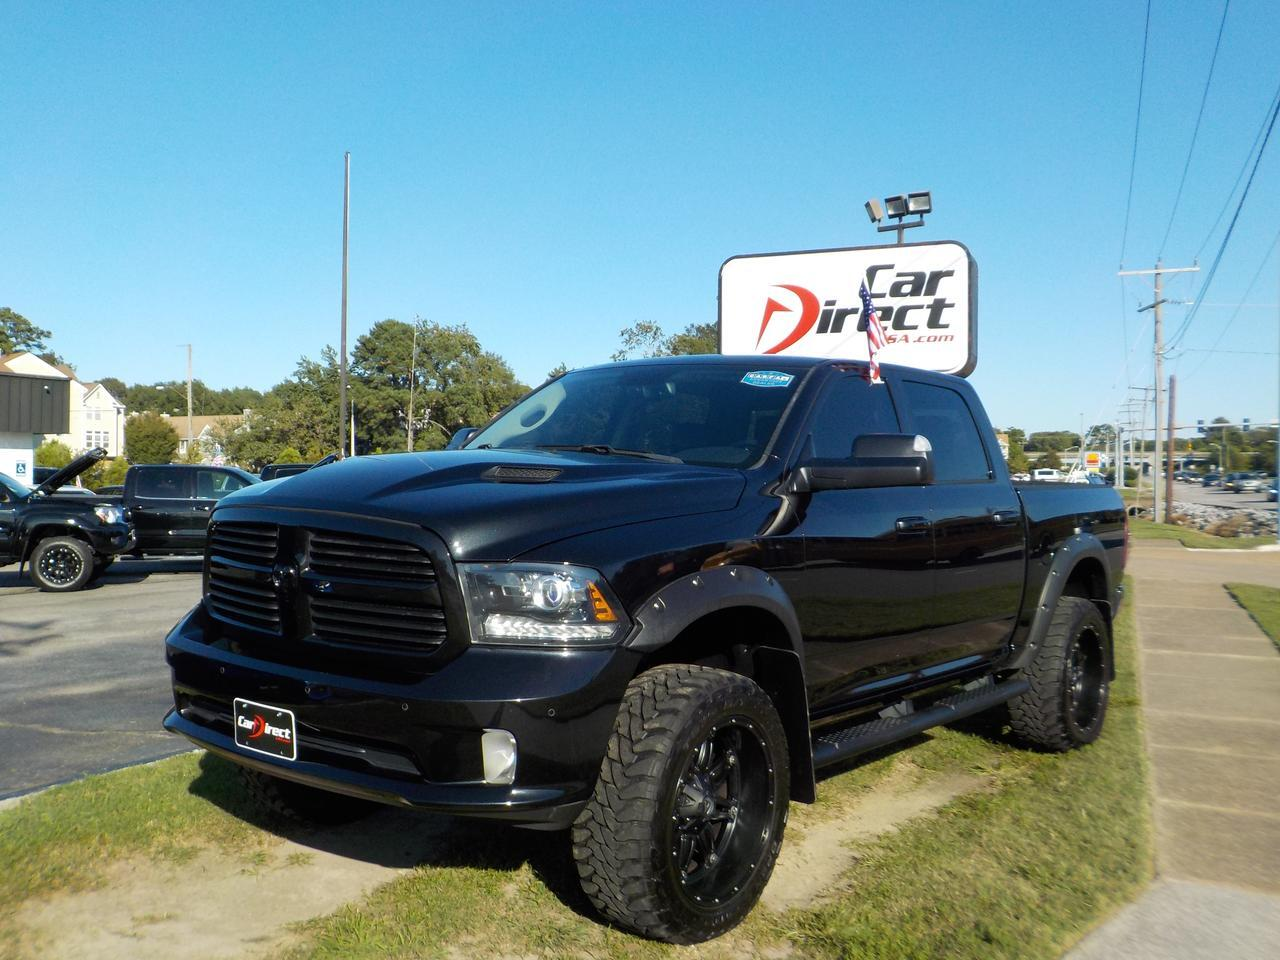 2016 Dodge Ram 1500 4x4 Crew Cab Sport Heated Seats Leather Tow Pkg Backup Cam Remote Start Only 46k Miles Virginia Beach Va 38618961